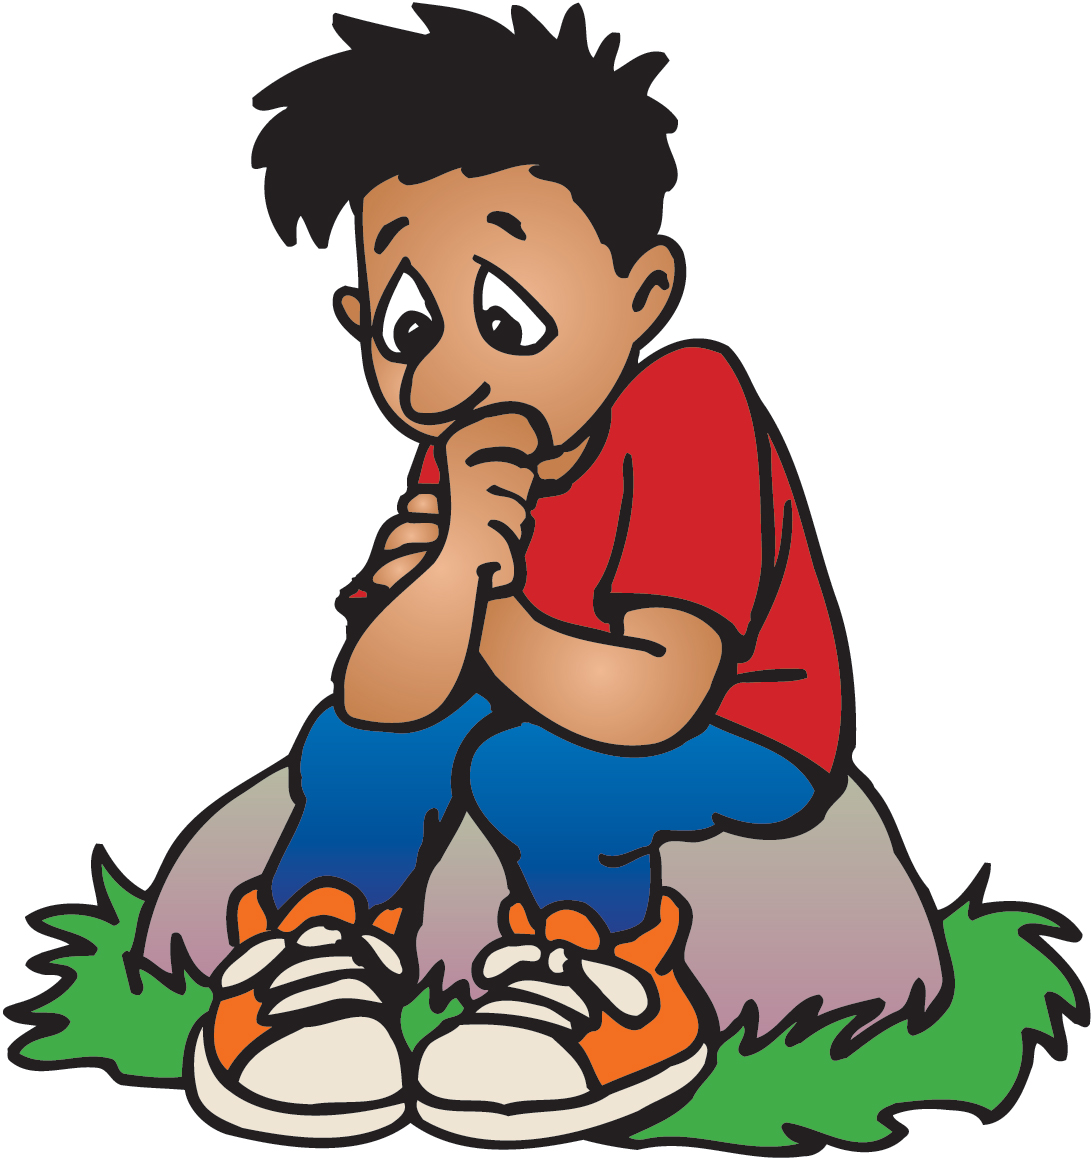 Boy clipart worried Face Cartoon cartoonsmix post &